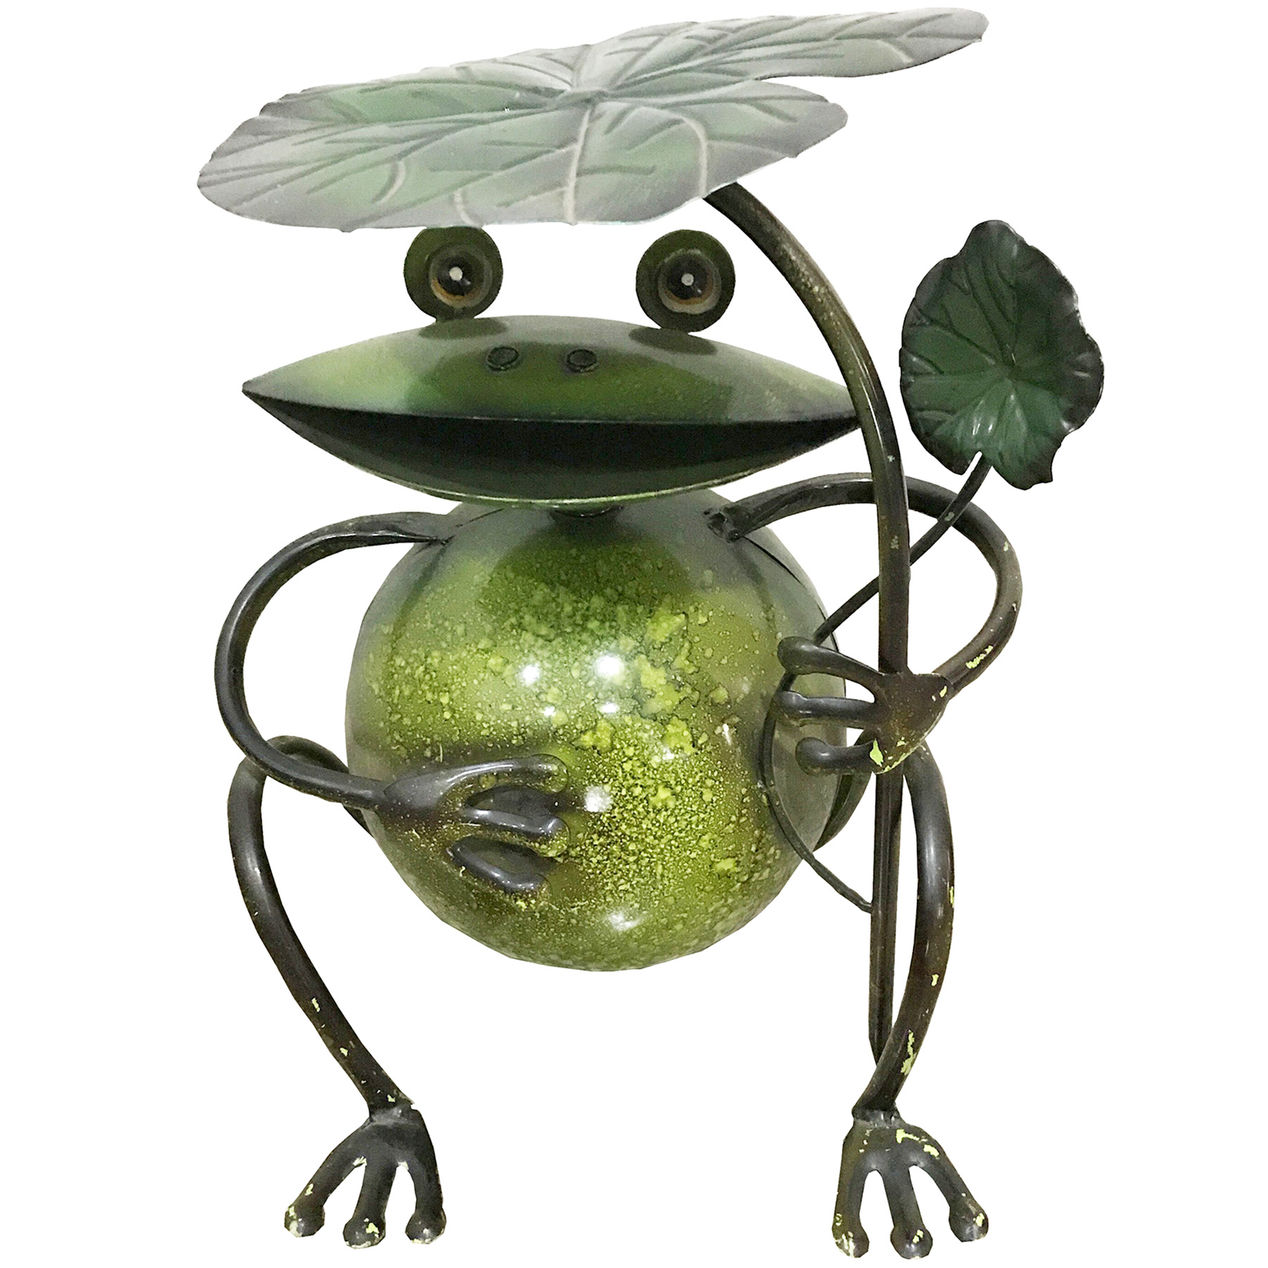 metal frog sitting with leaf home drum accent tables person bar height table best lamps hall chest large round mirror vintage mid century furniture designer placemats and napkins